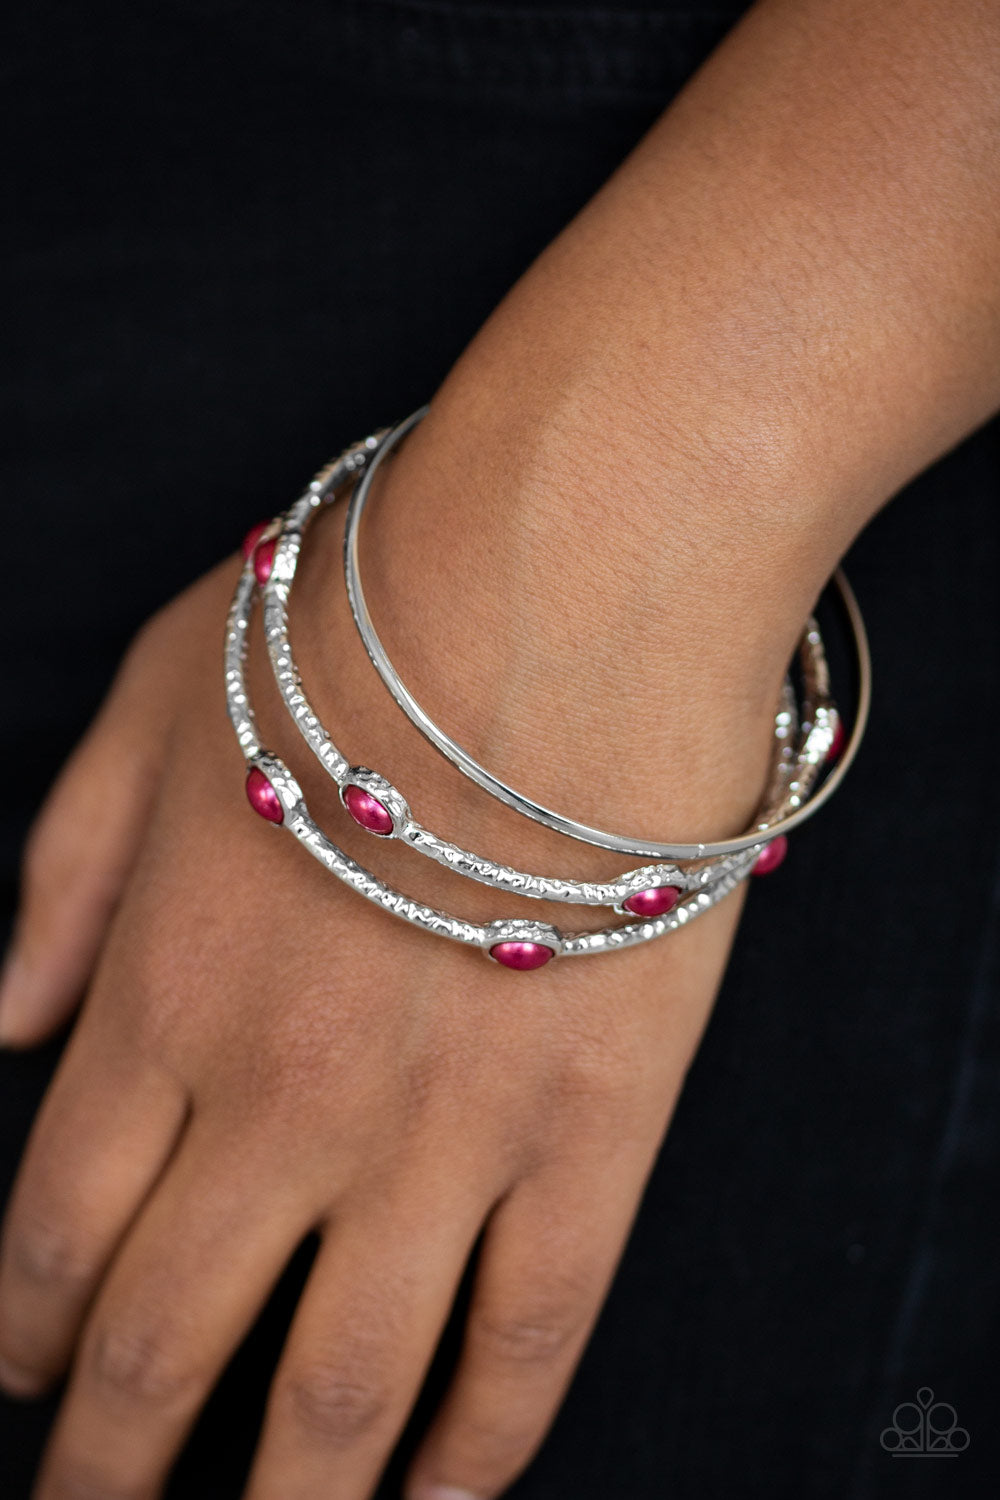 Paparazzi - Bangle Belle - Red Bracelet - Classy Jewels by Linda